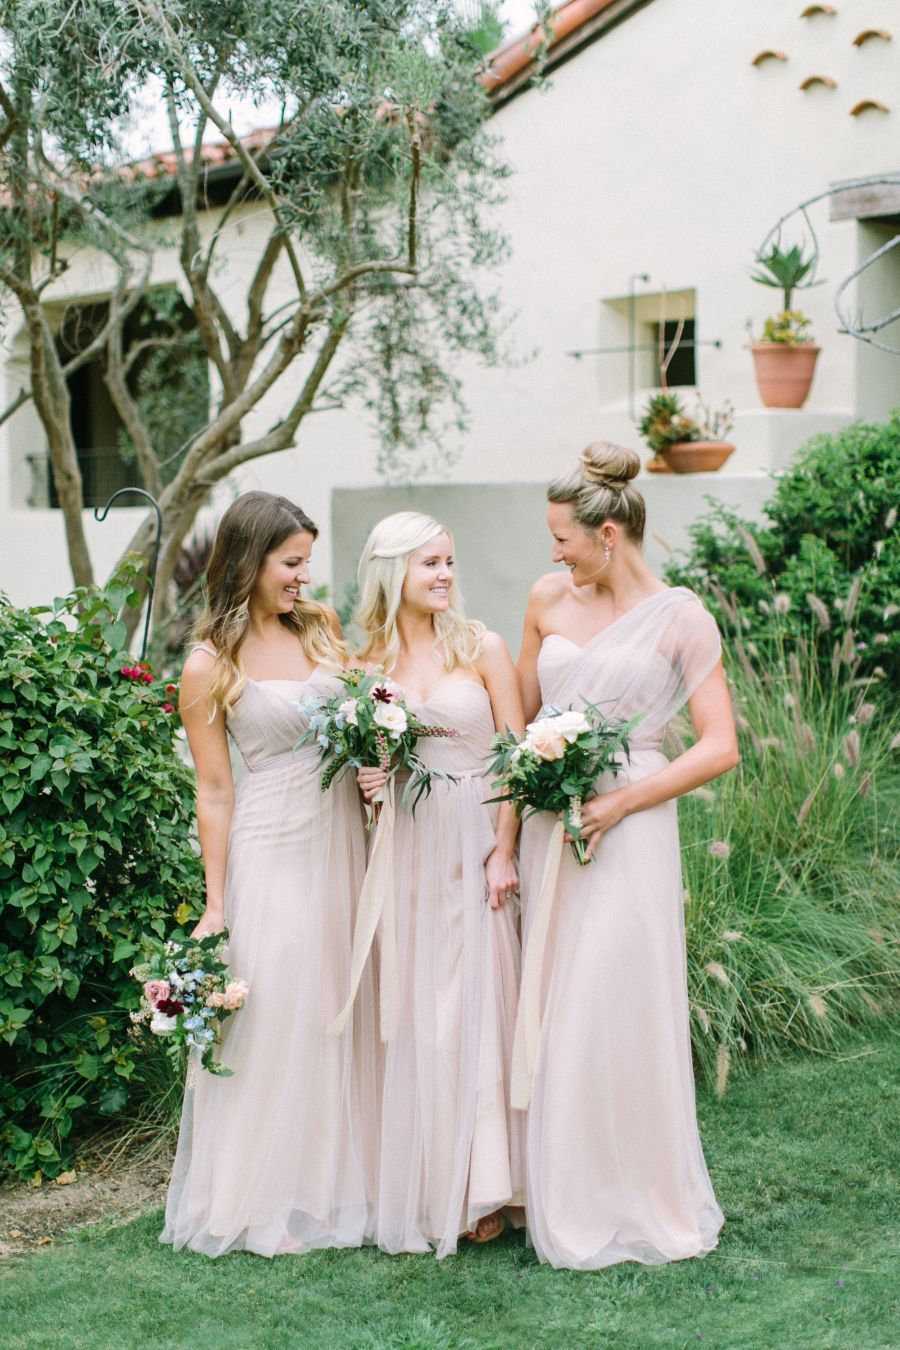 Blush Complementary Bridesmaid Dresses Champagne Bridesmaid Dresses Summer Wedding Colors Wedding Bridesmaid Dresses